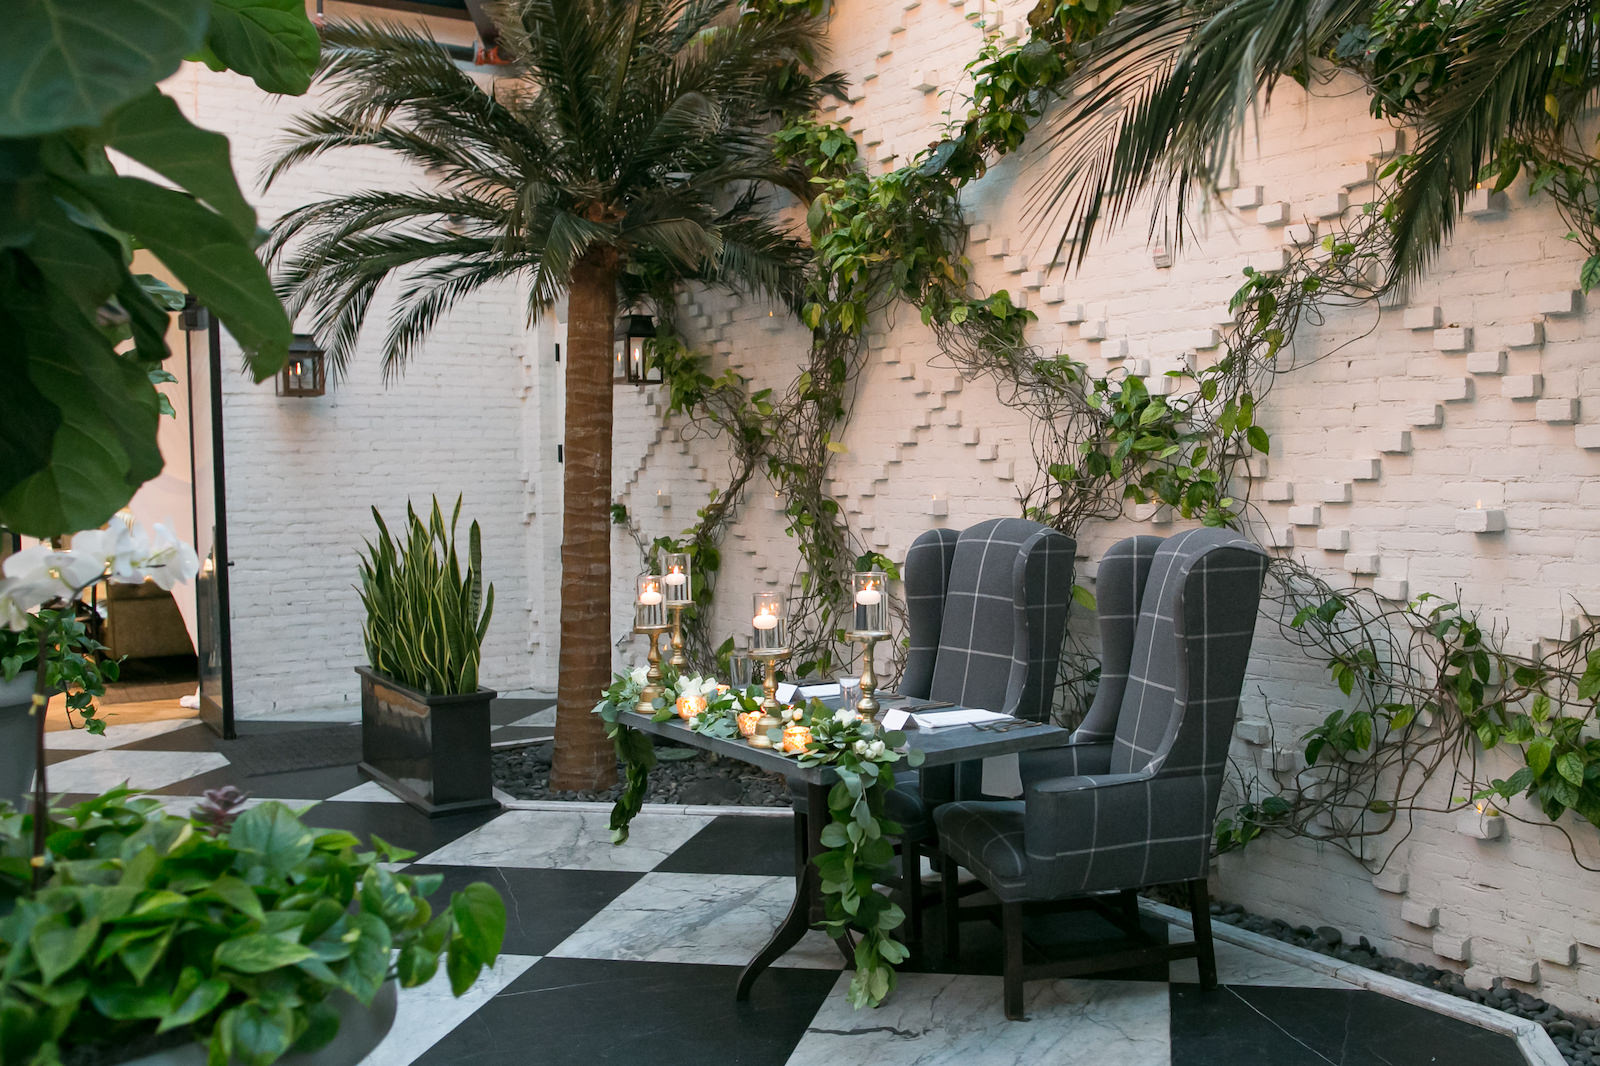 Tampa Wedding Reception at Oxford Exchange Downtown Tampa | Sweetheart Table with Upholstered Wingback Chairs and White Napkins | Wedding Centerpieces of Floating Pedestal Candles and Greenery Garland